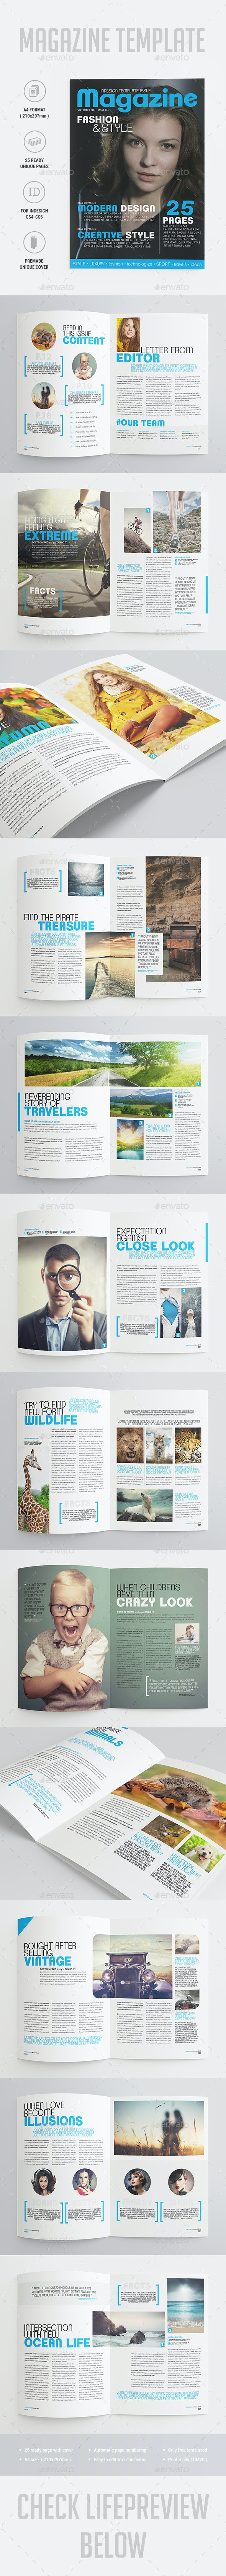 25 Pages Universal Magazine Vol74 - Magazines Print Templates